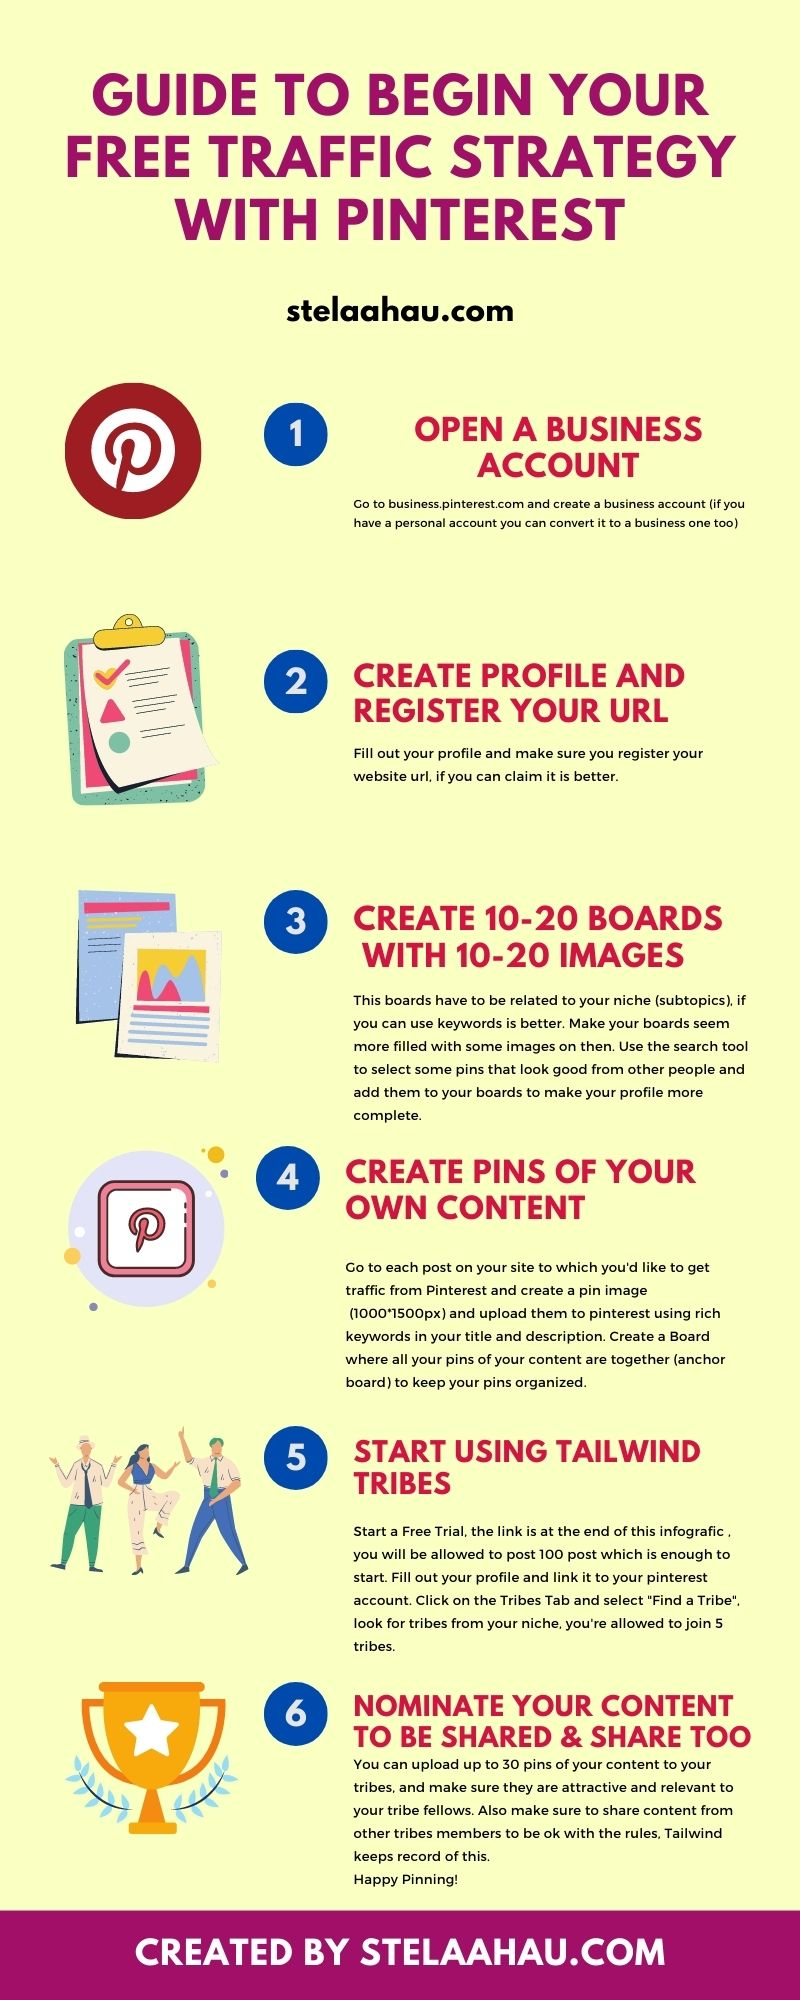 Guide to begin your free traffic strategy with pinterest